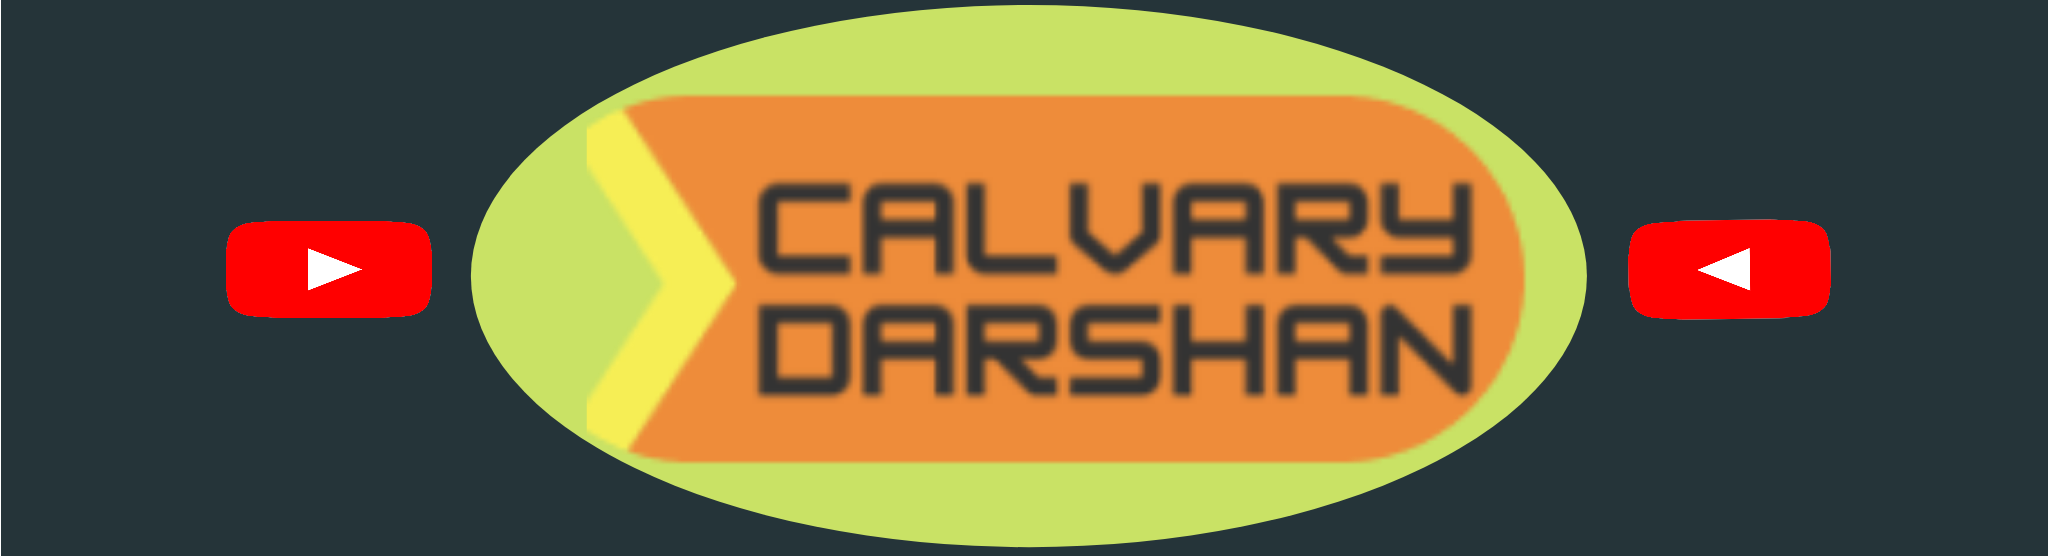 Calvary Darshan T V Productions